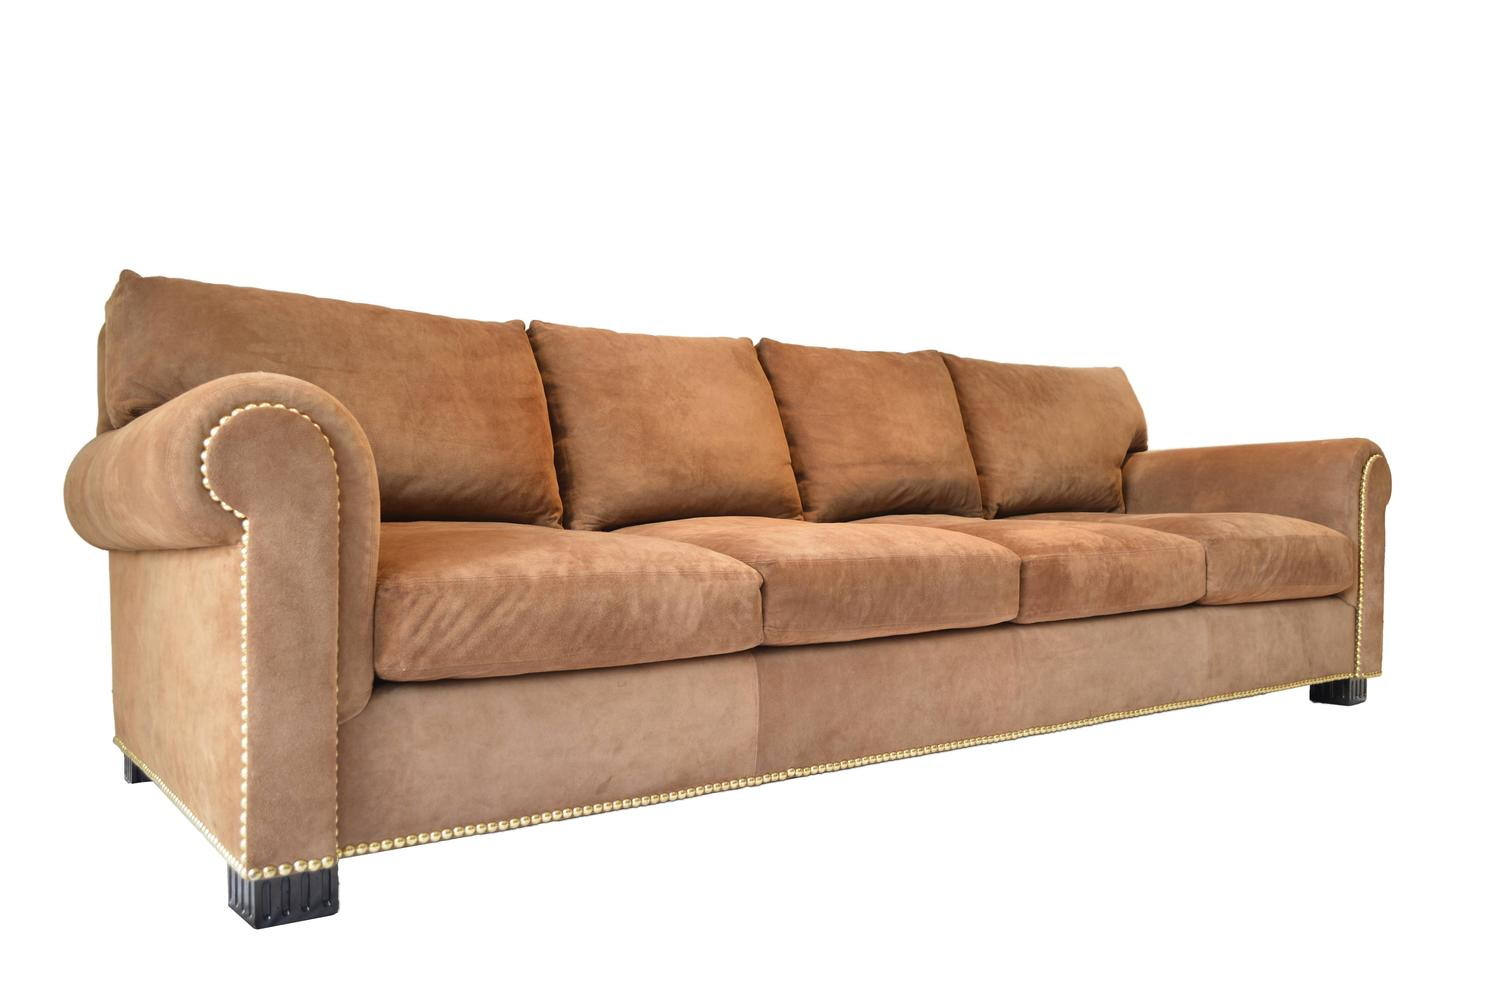 Suede rolled arm sofa by ralph lauren for sale at 1stdibs for Suede sectional